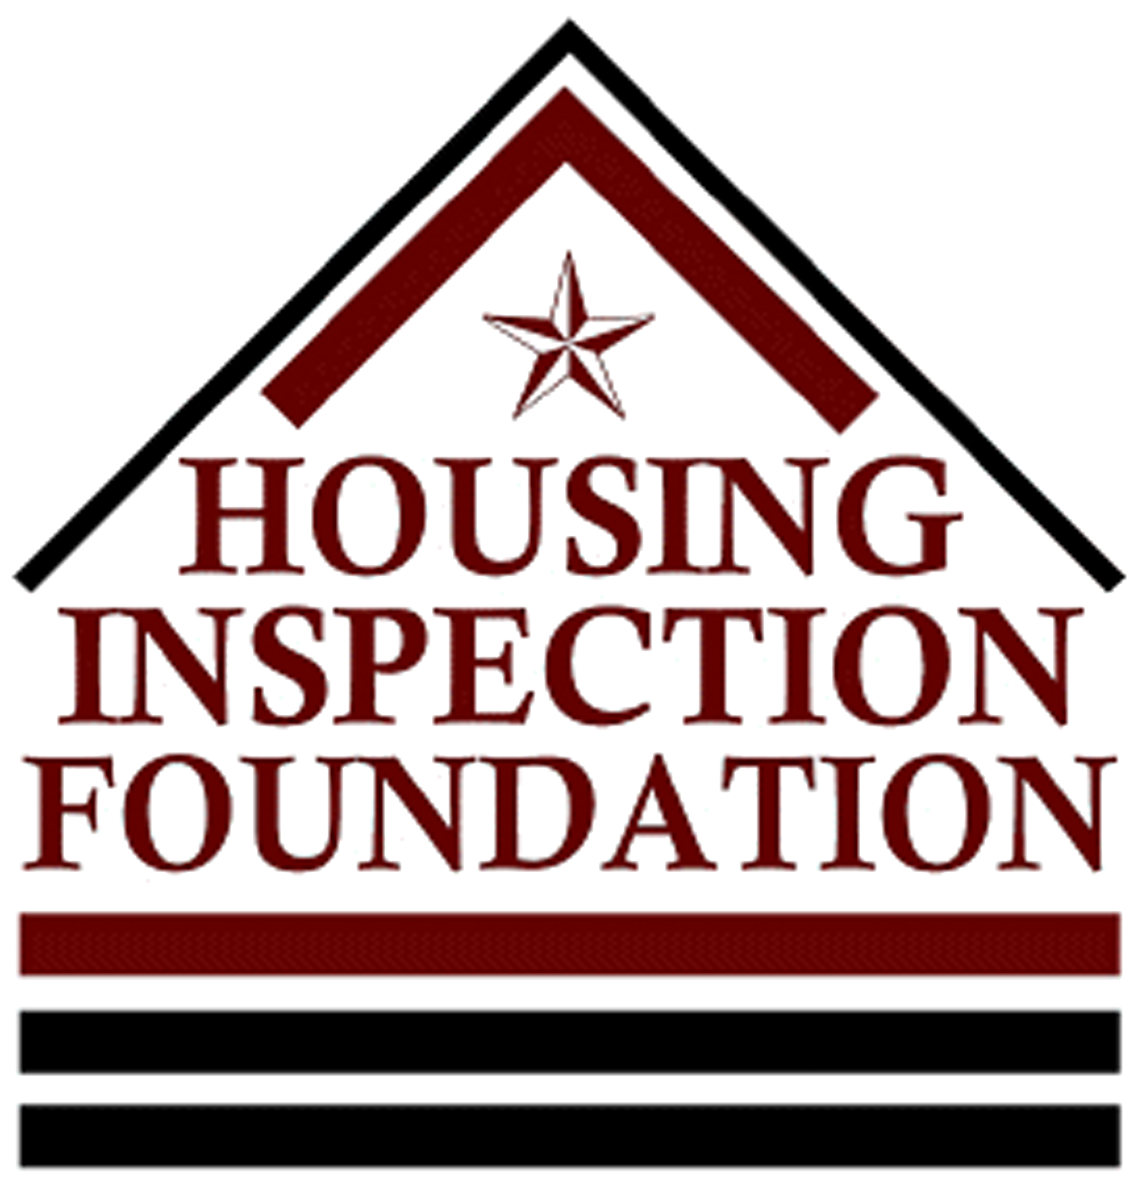 Housing Inspection Foundation